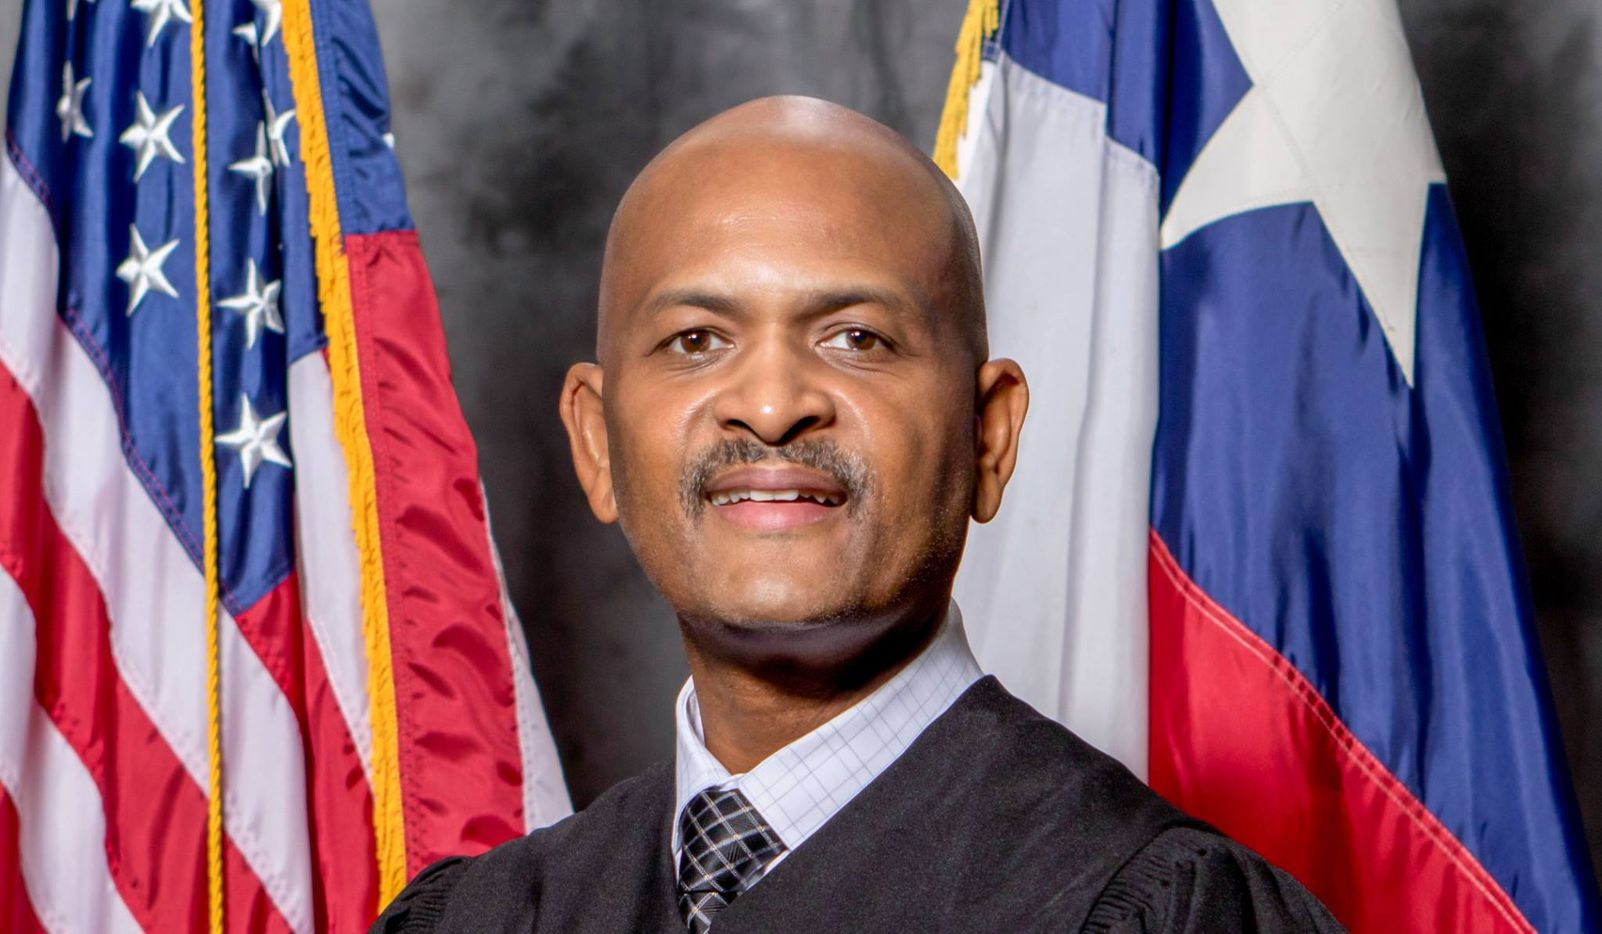 Judge Robert Johnson